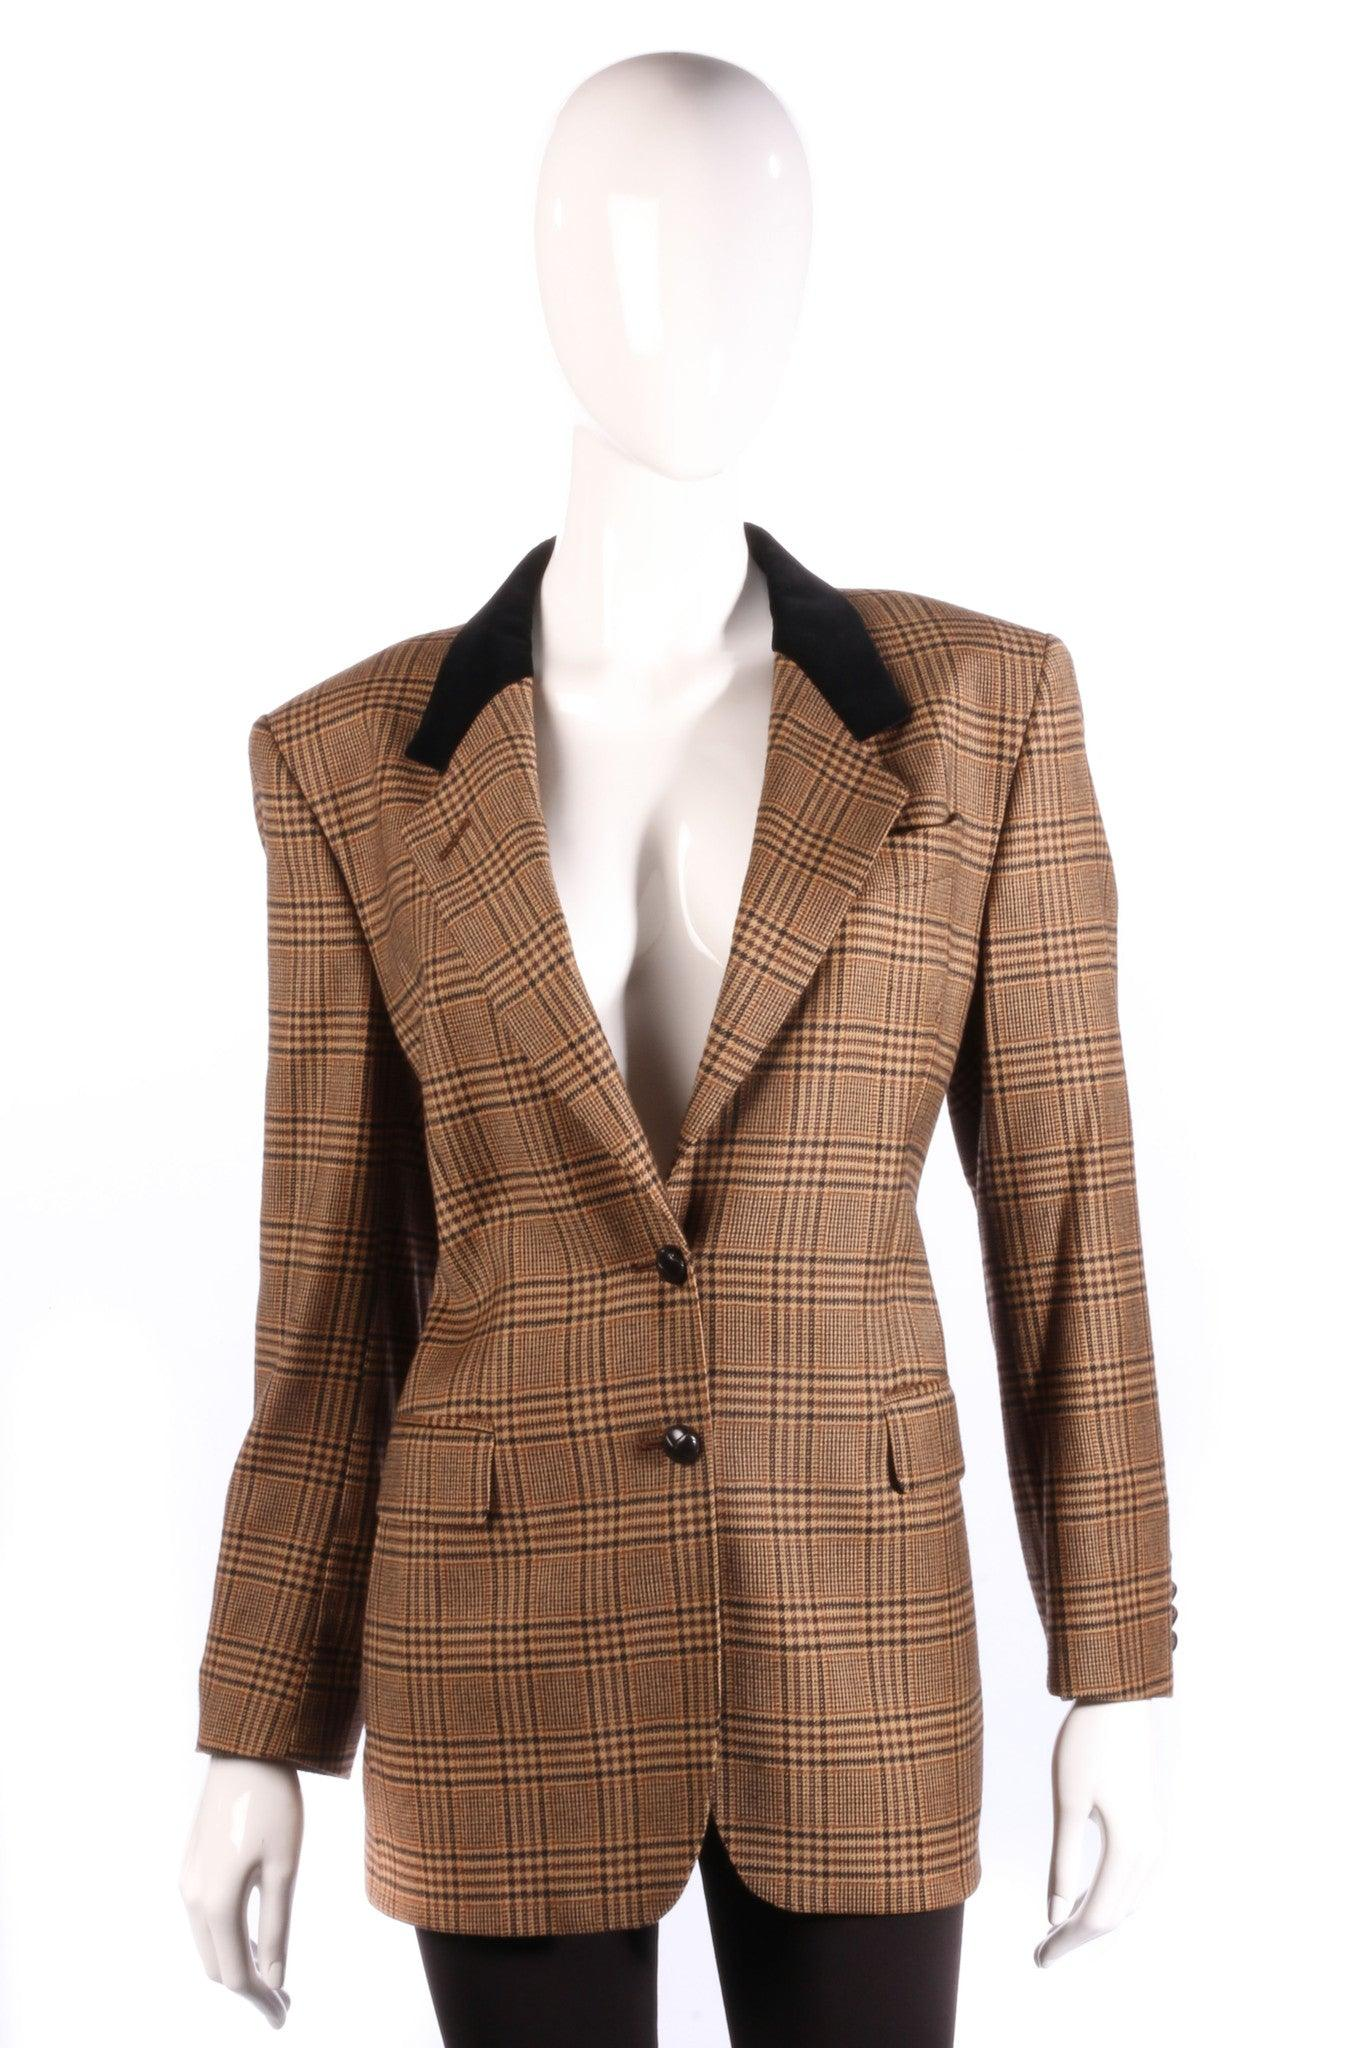 Austin Reed Jacket Wool With Velvet Collar Brown Check Uk Size 10 Austin Reed Brown Checked Jacket With Velvet Collar Label Austin Reed Jacket Wool With Velvet Collar Brown Check Uk Size 10 Austin Reed Brown Checked Jacket With Velvet Collar Label